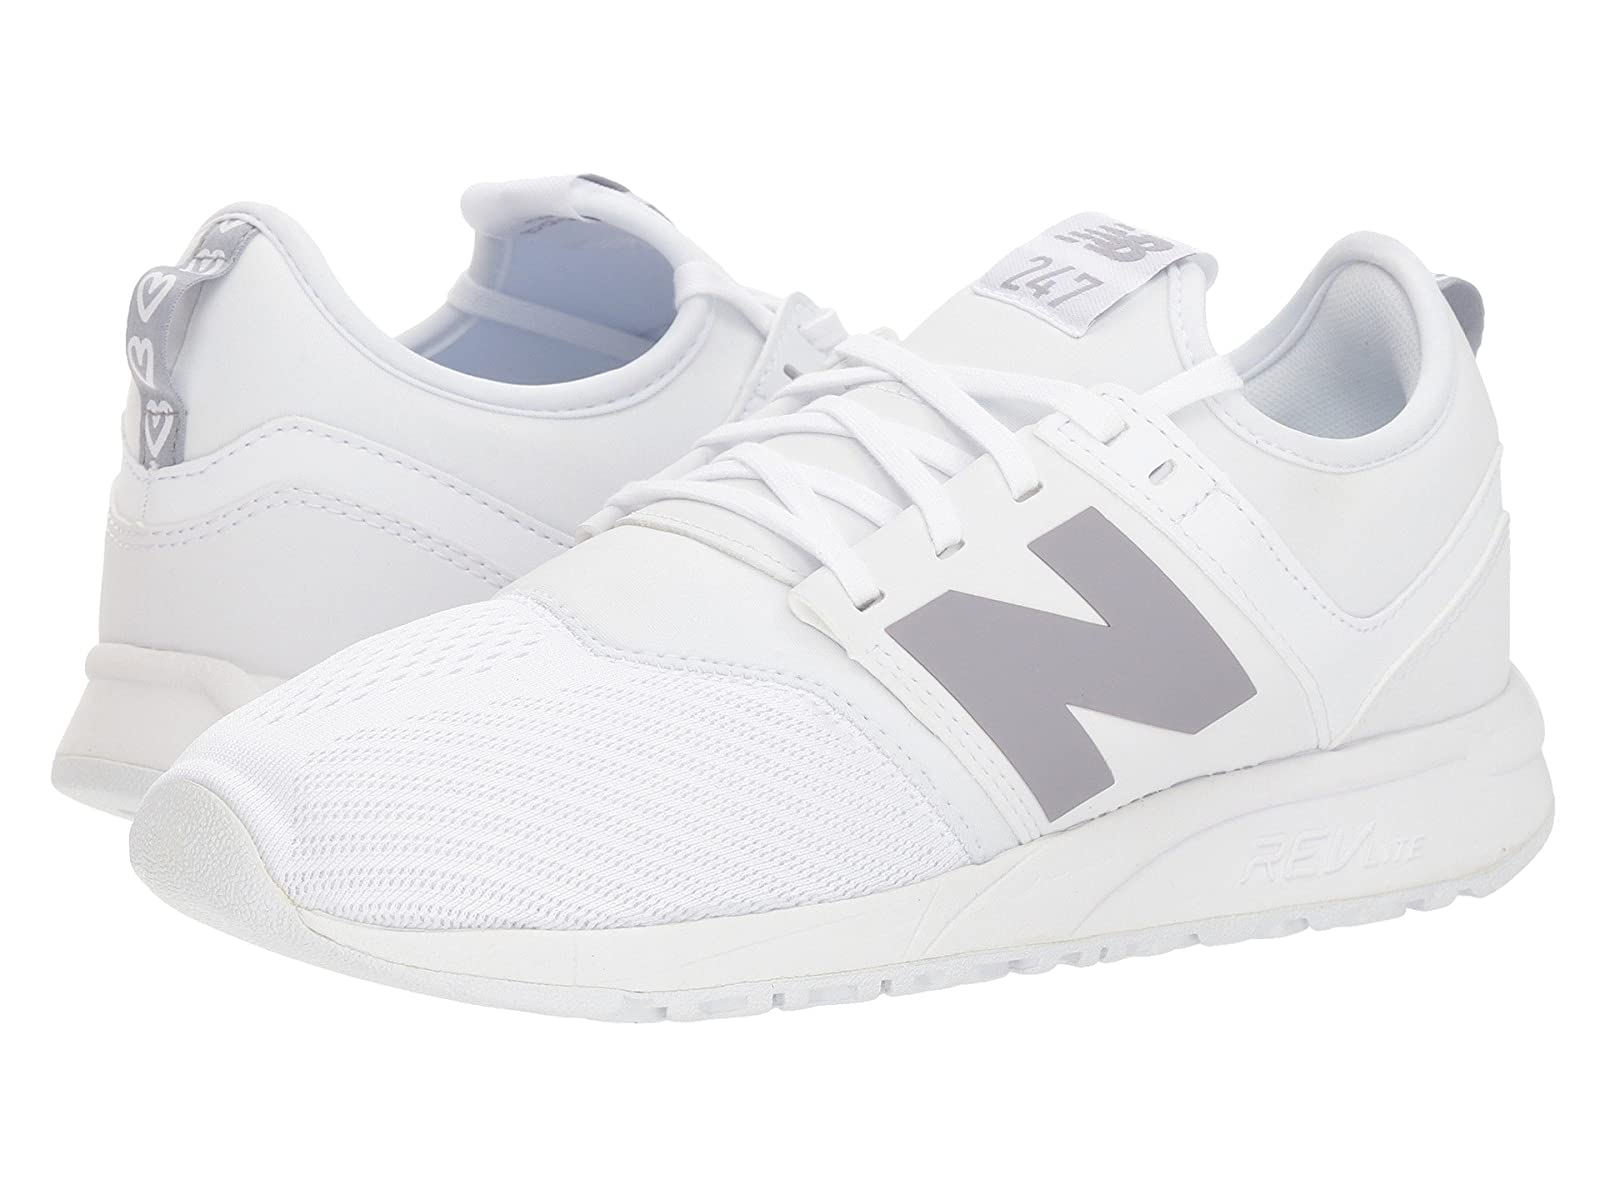 New Balance Classics WS247v2Atmospheric grades have affordable shoes